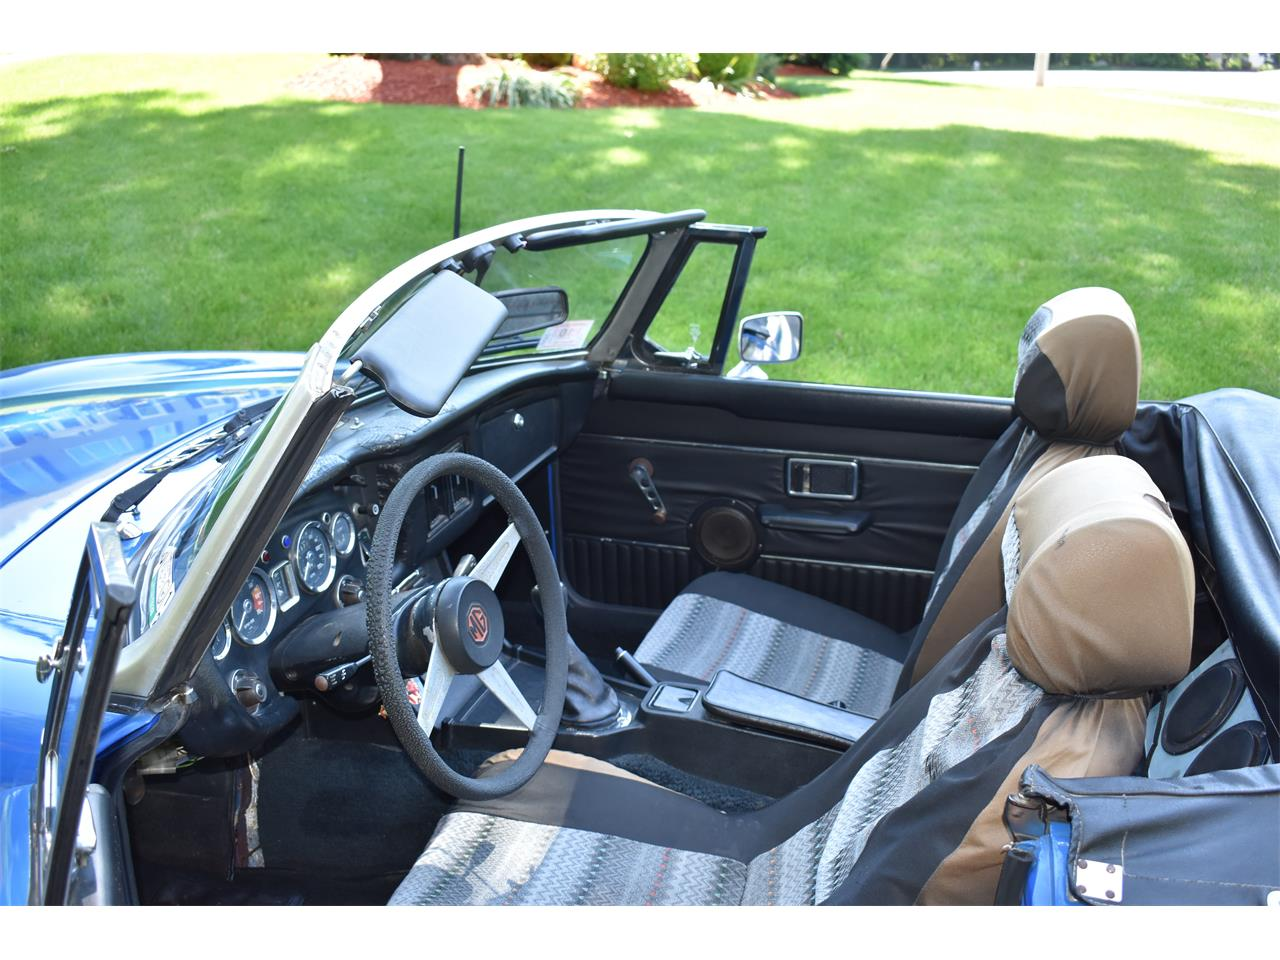 Large Picture of 1974 MG MGB located in Franklin Massachusetts - $7,500.00 Offered by a Private Seller - LB9Q